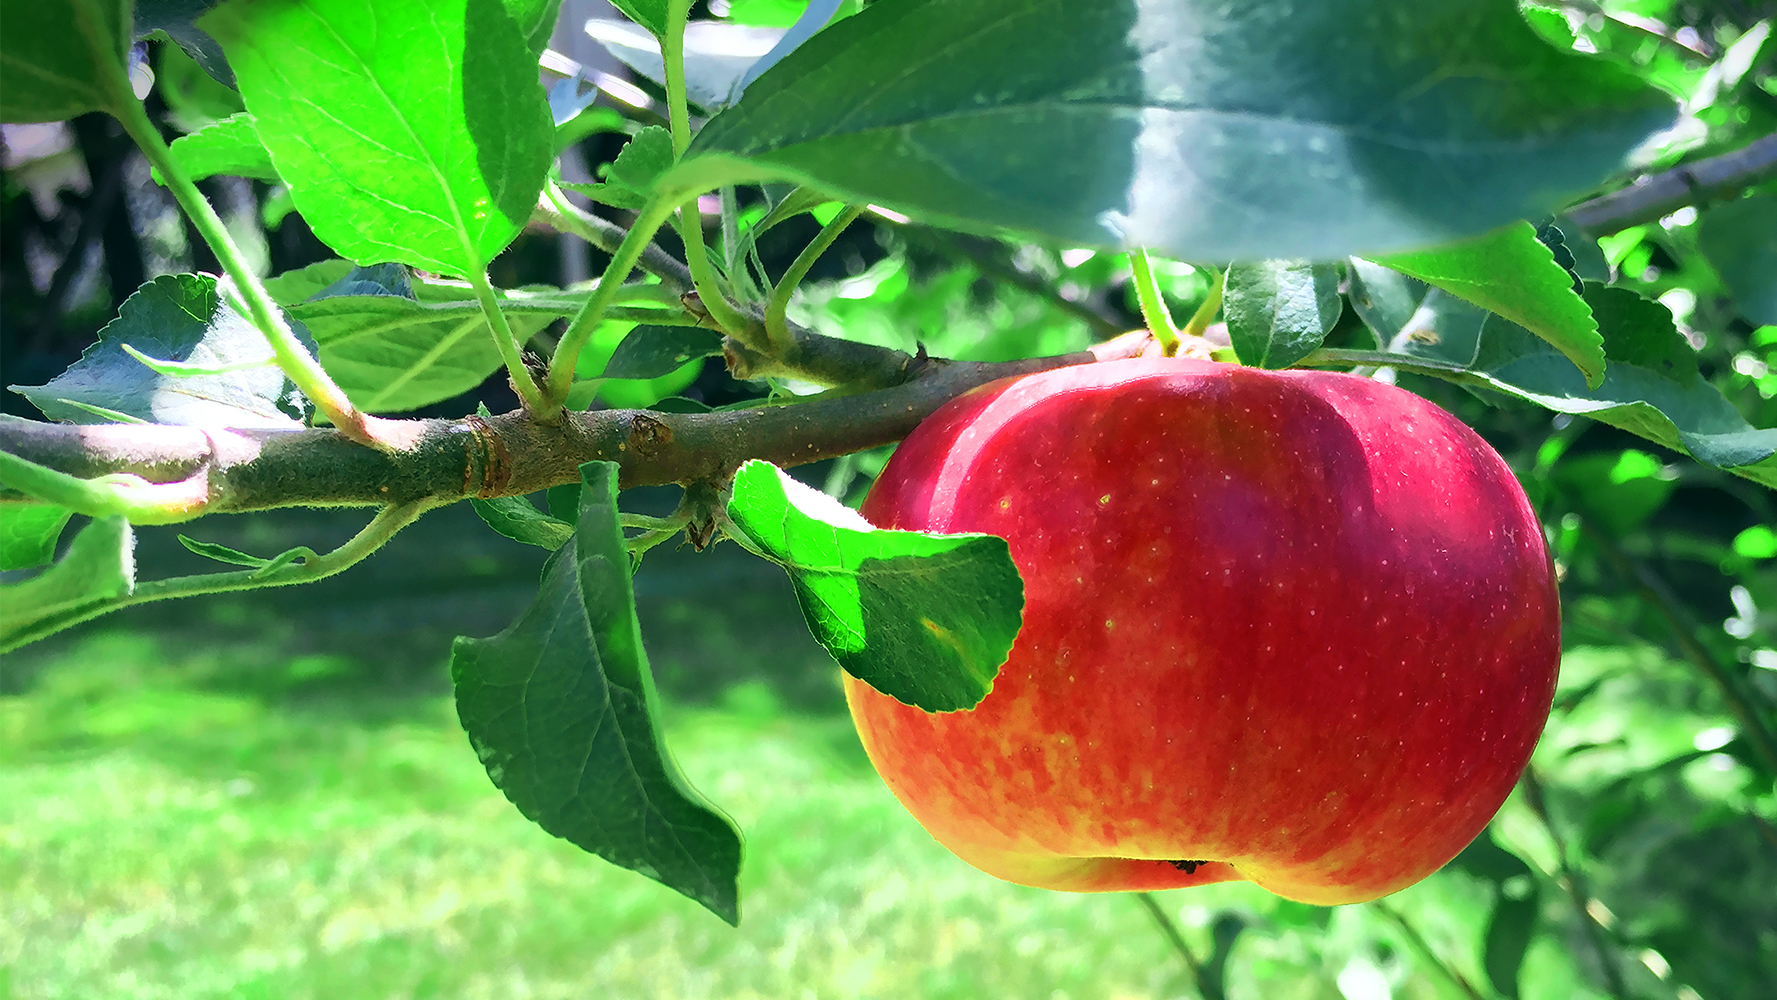 An apple hanging from a tree in the sunlight